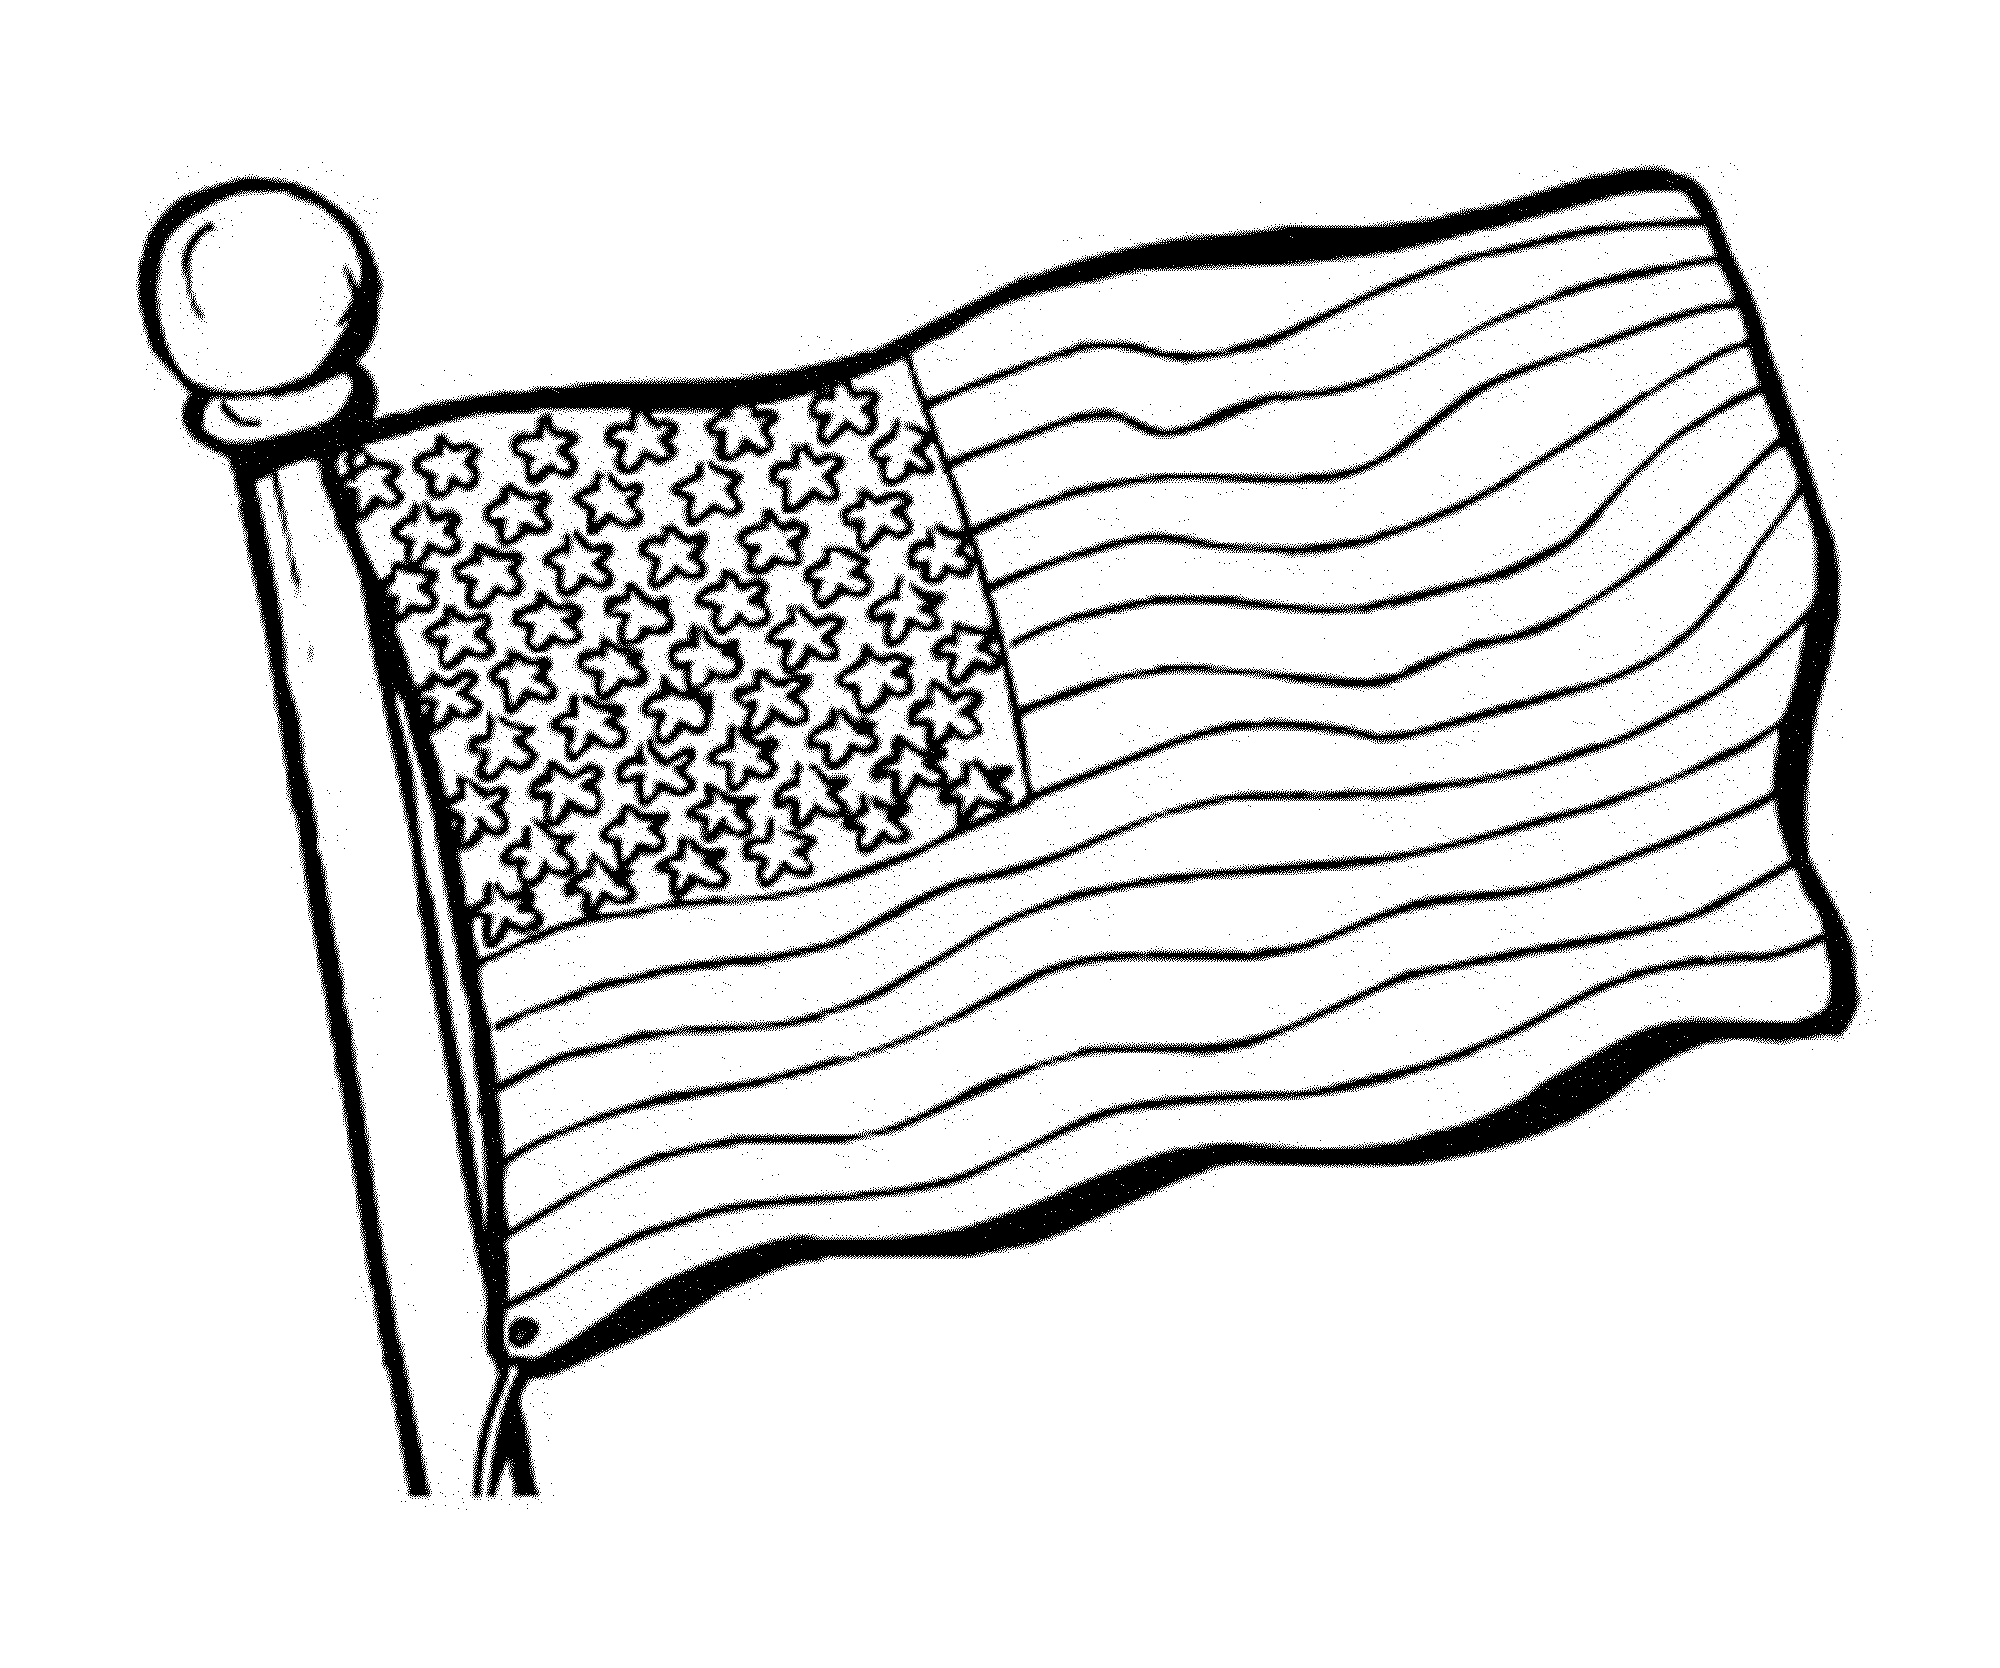 the american flag coloring page american flag coloring page for the love of the country page flag coloring american the